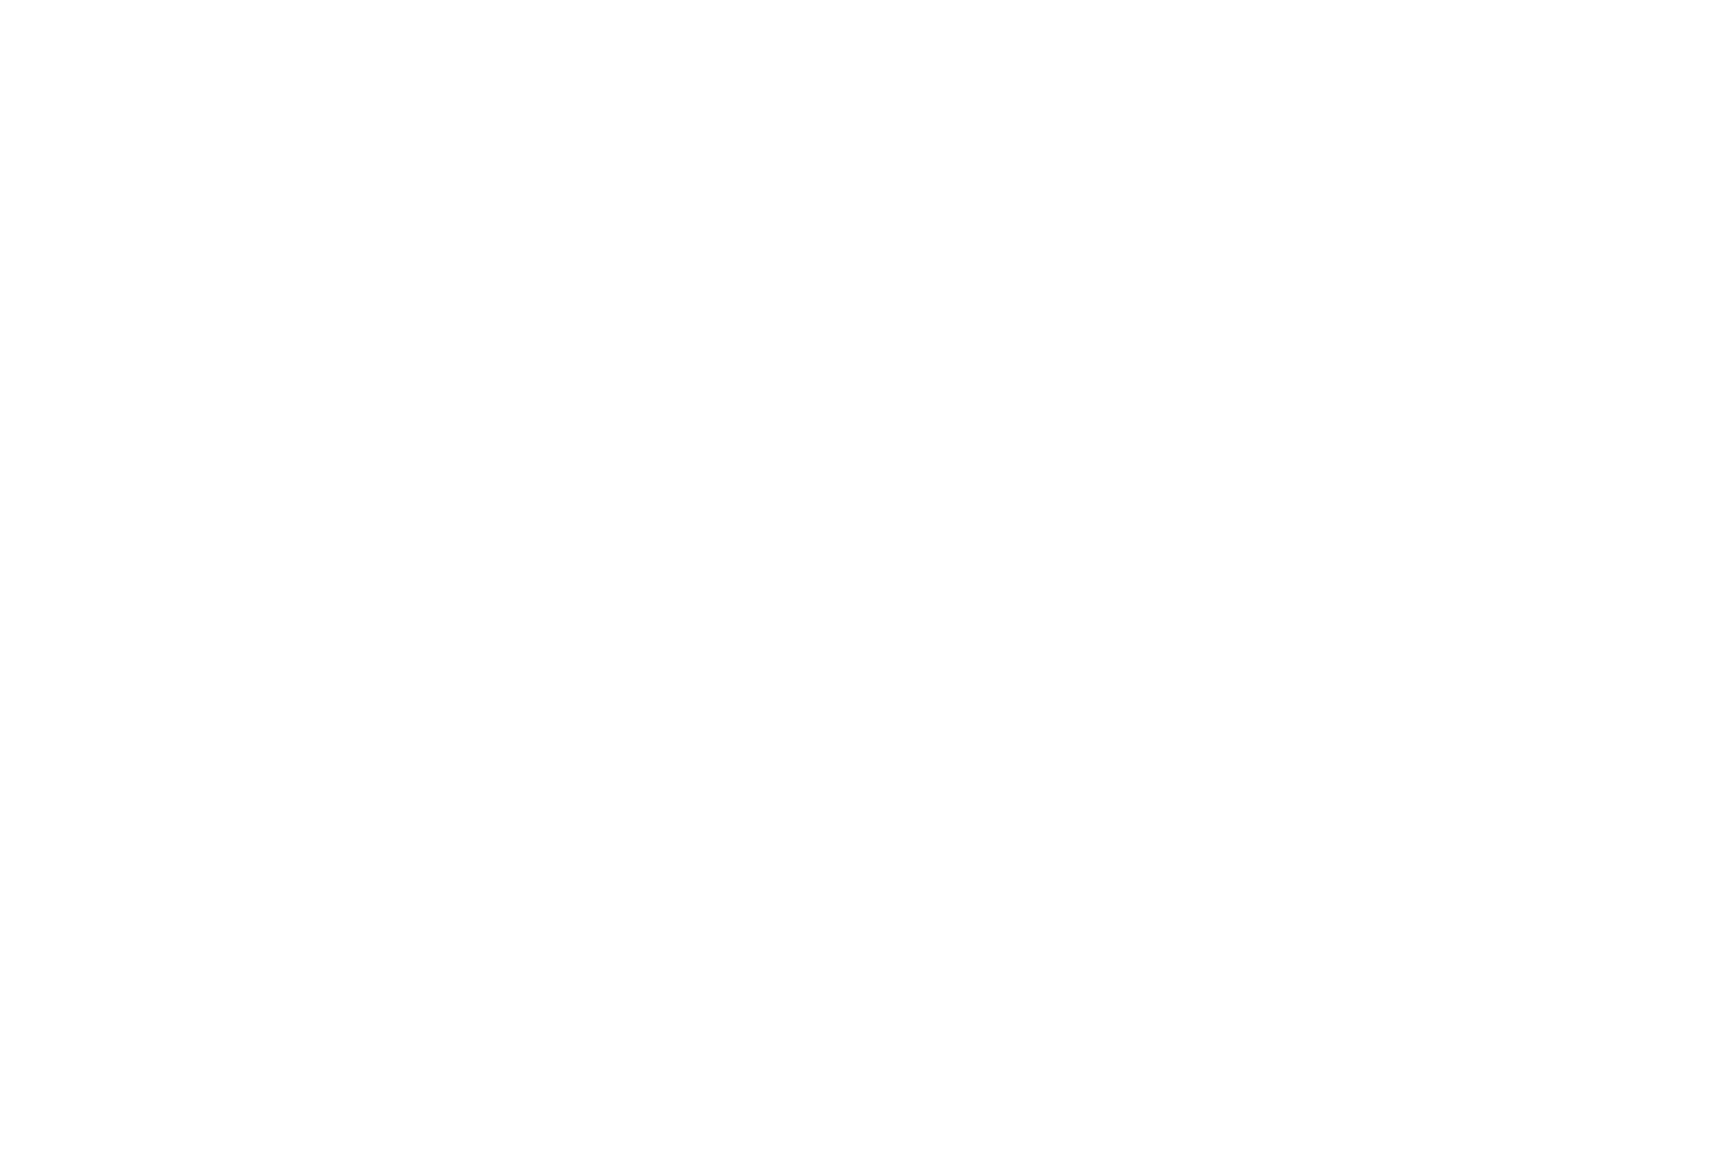 OFFICIAL SELECTION - FEEDBACK Under 5 Minute Film and Smartphone Festival - 2020